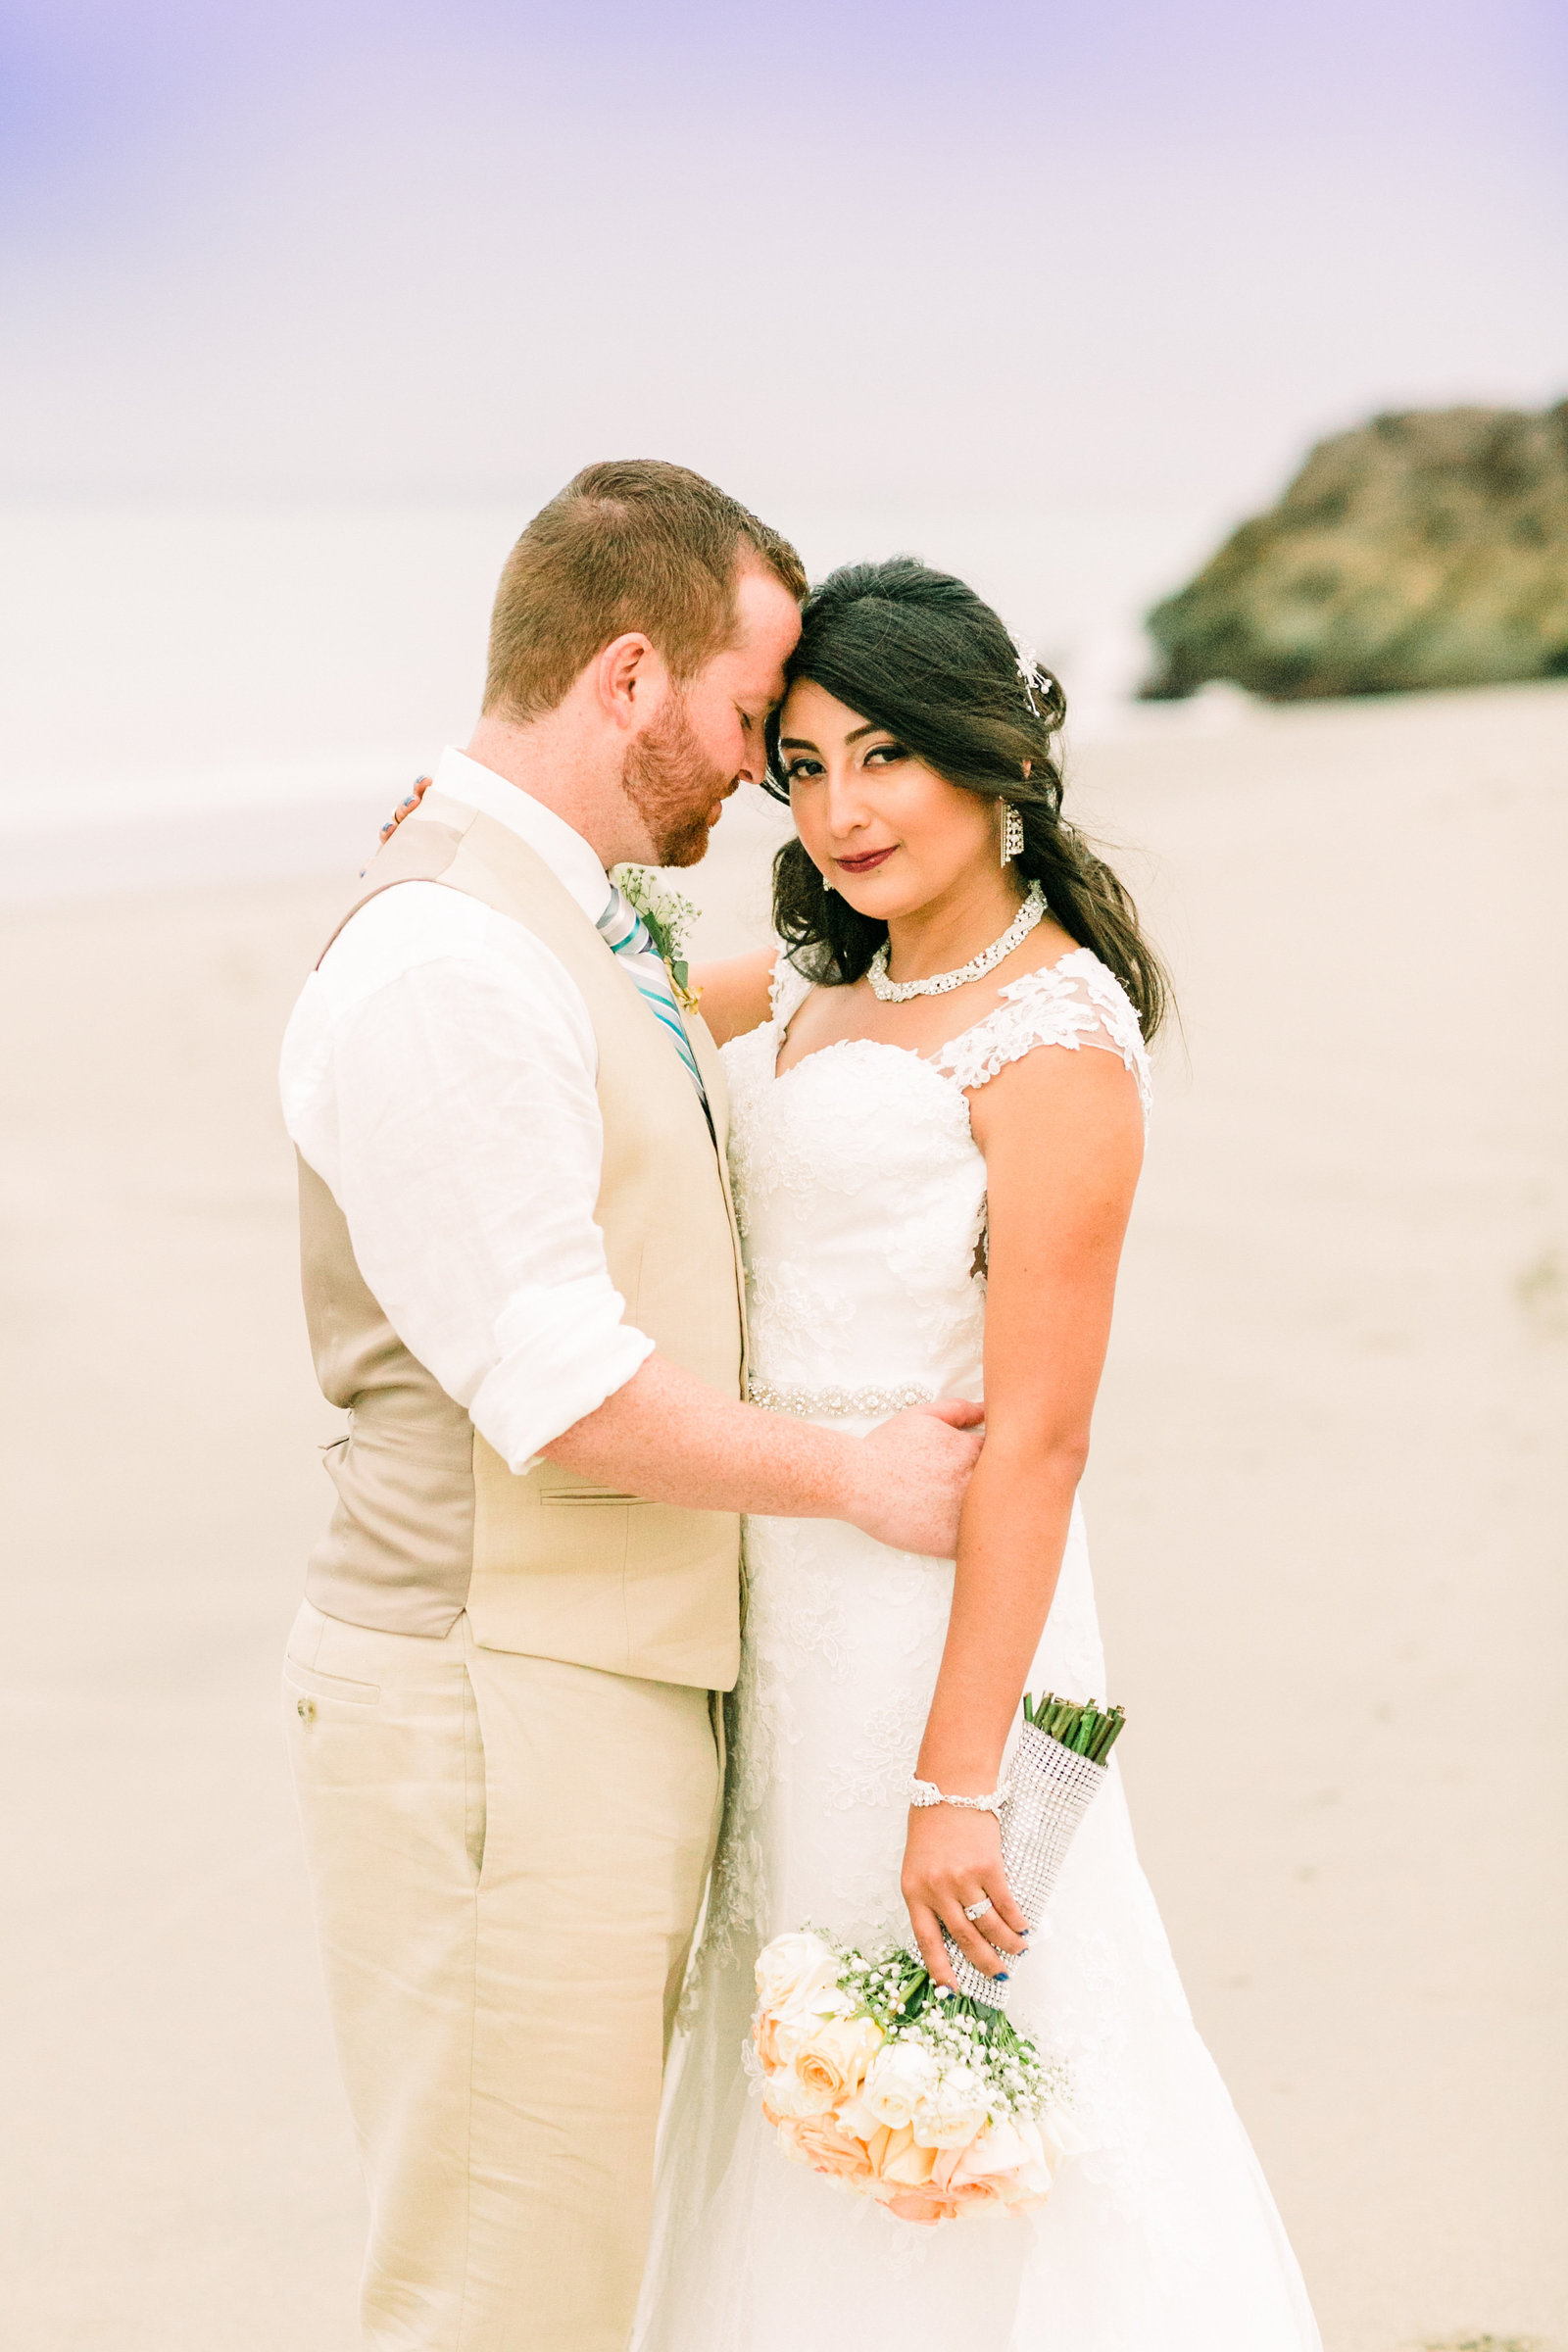 Bride and Groom, Alex and Cristina, pose on the beach of Ecuador after their wedding ceremony.